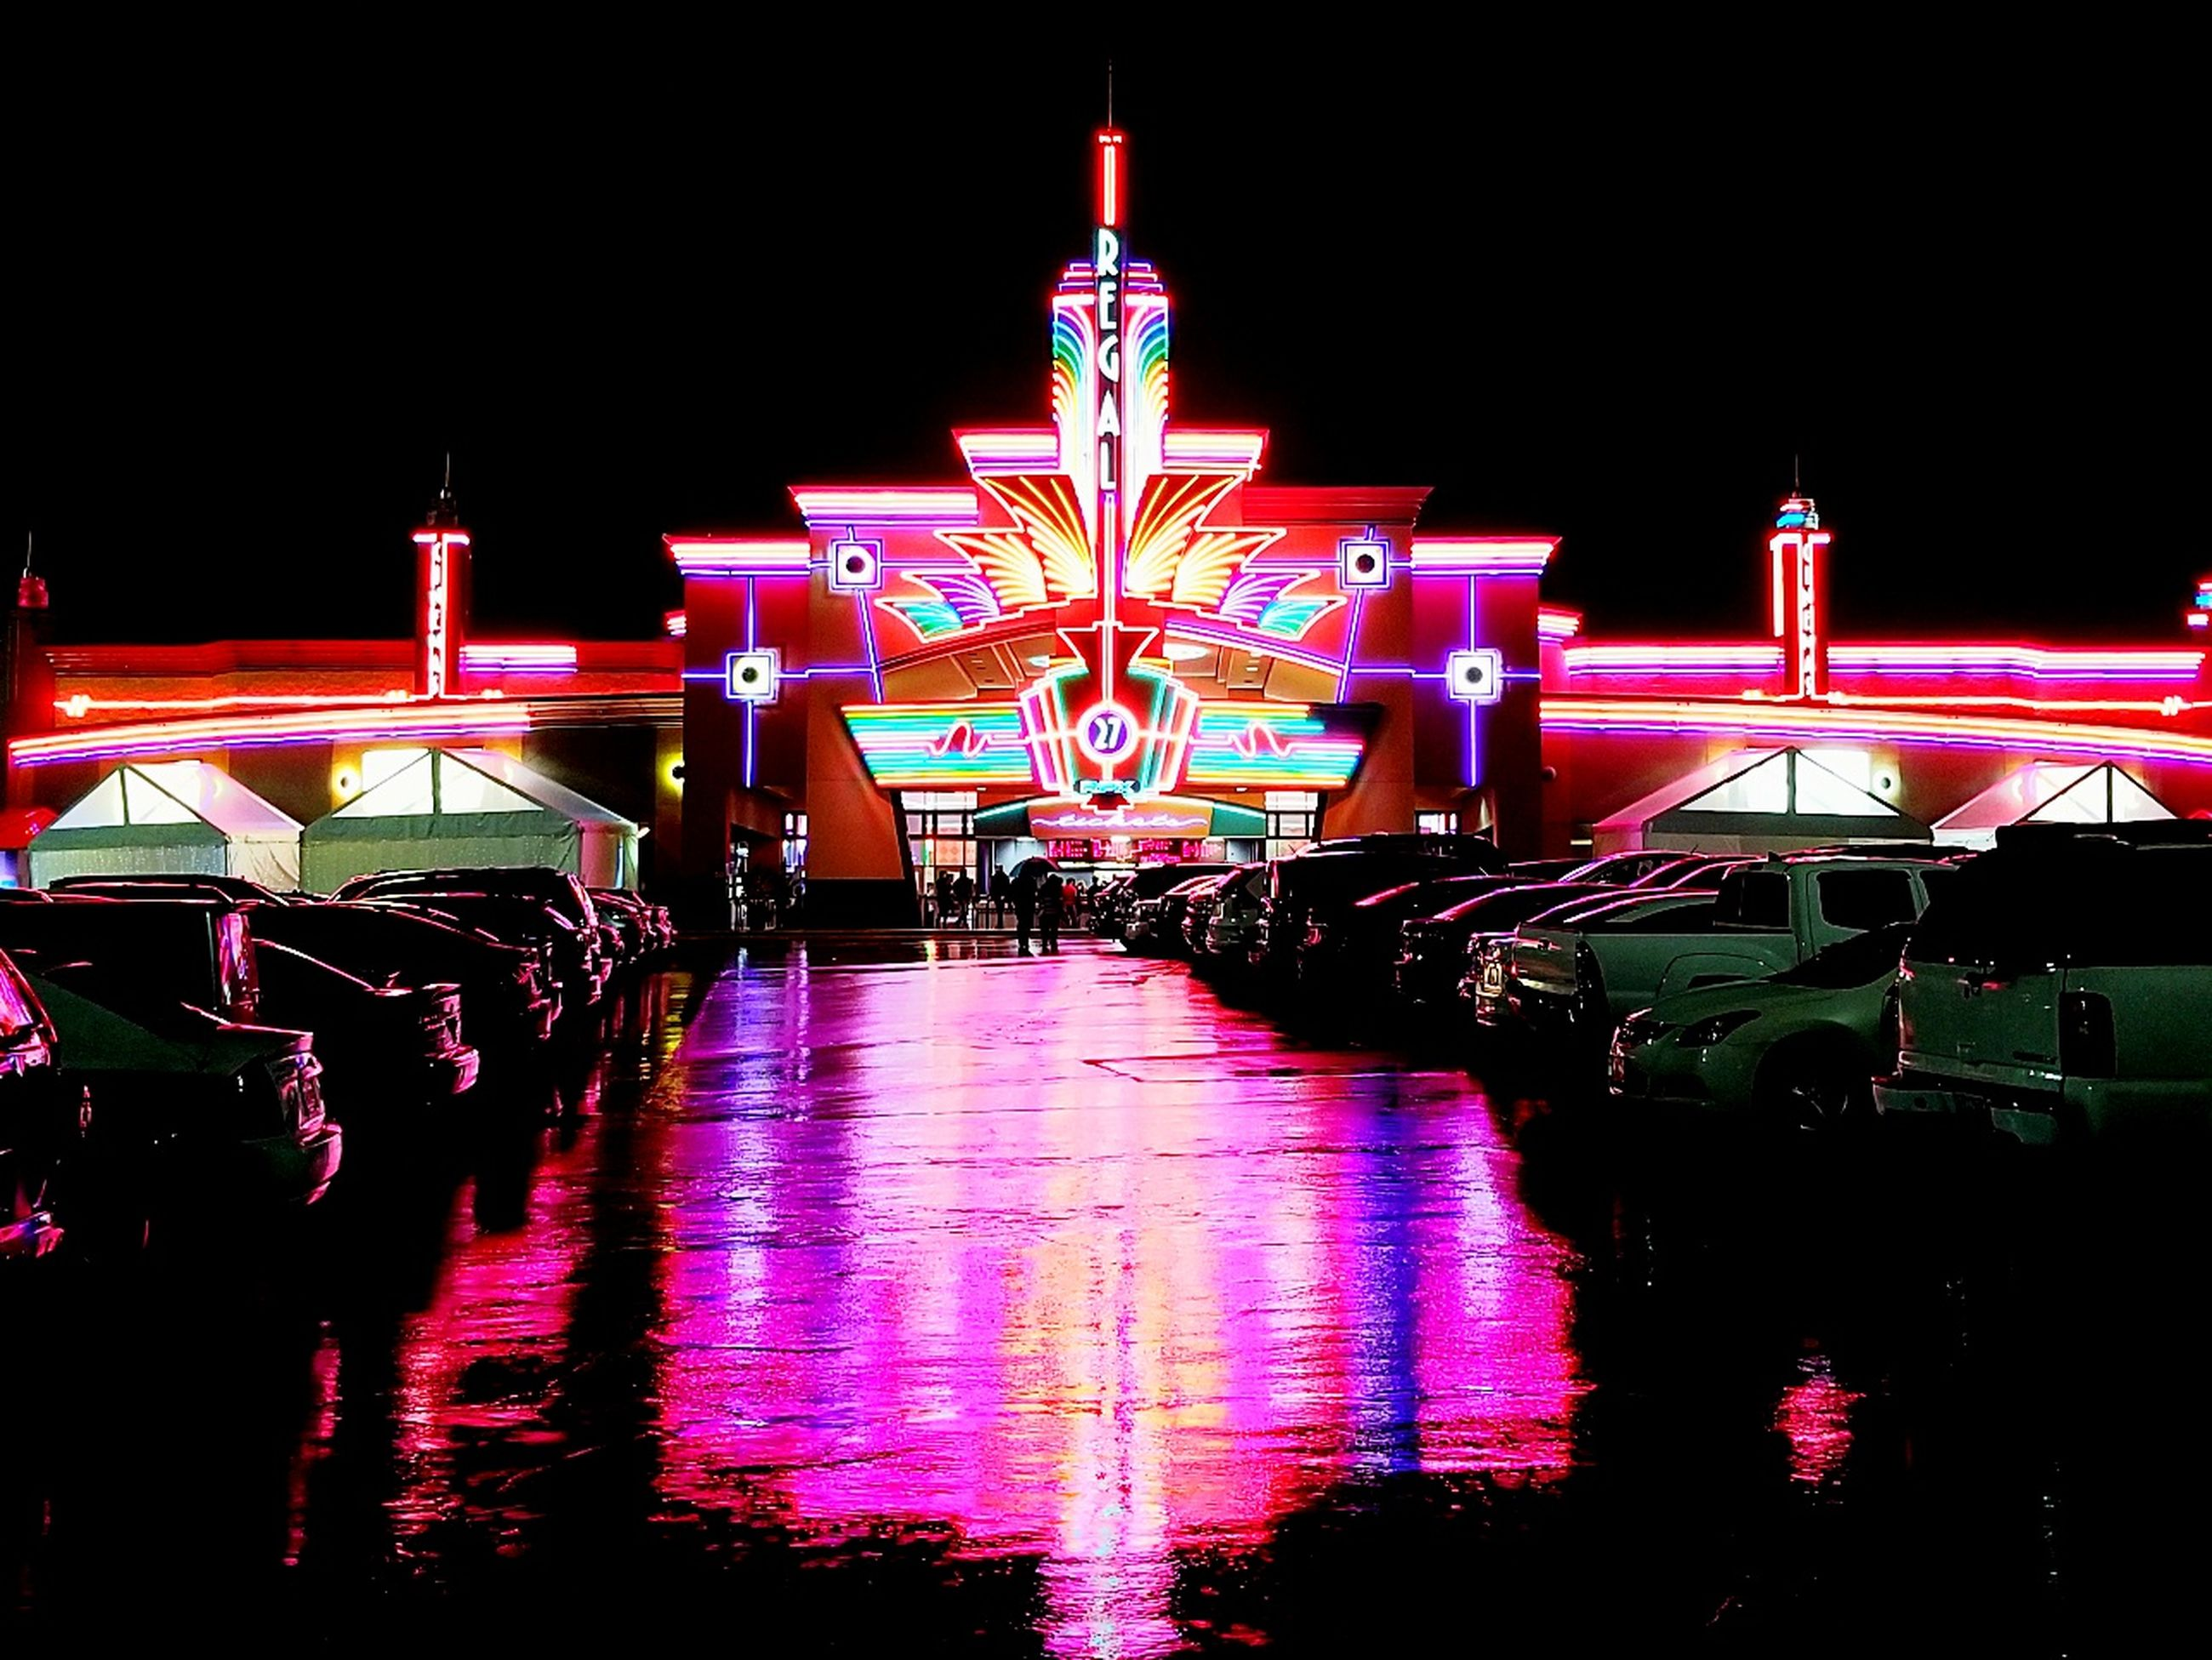 night, illuminated, amusement park, multi colored, outdoors, amusement park ride, arts culture and entertainment, architecture, built structure, clear sky, no people, travel destinations, sky, carousel, building exterior, water